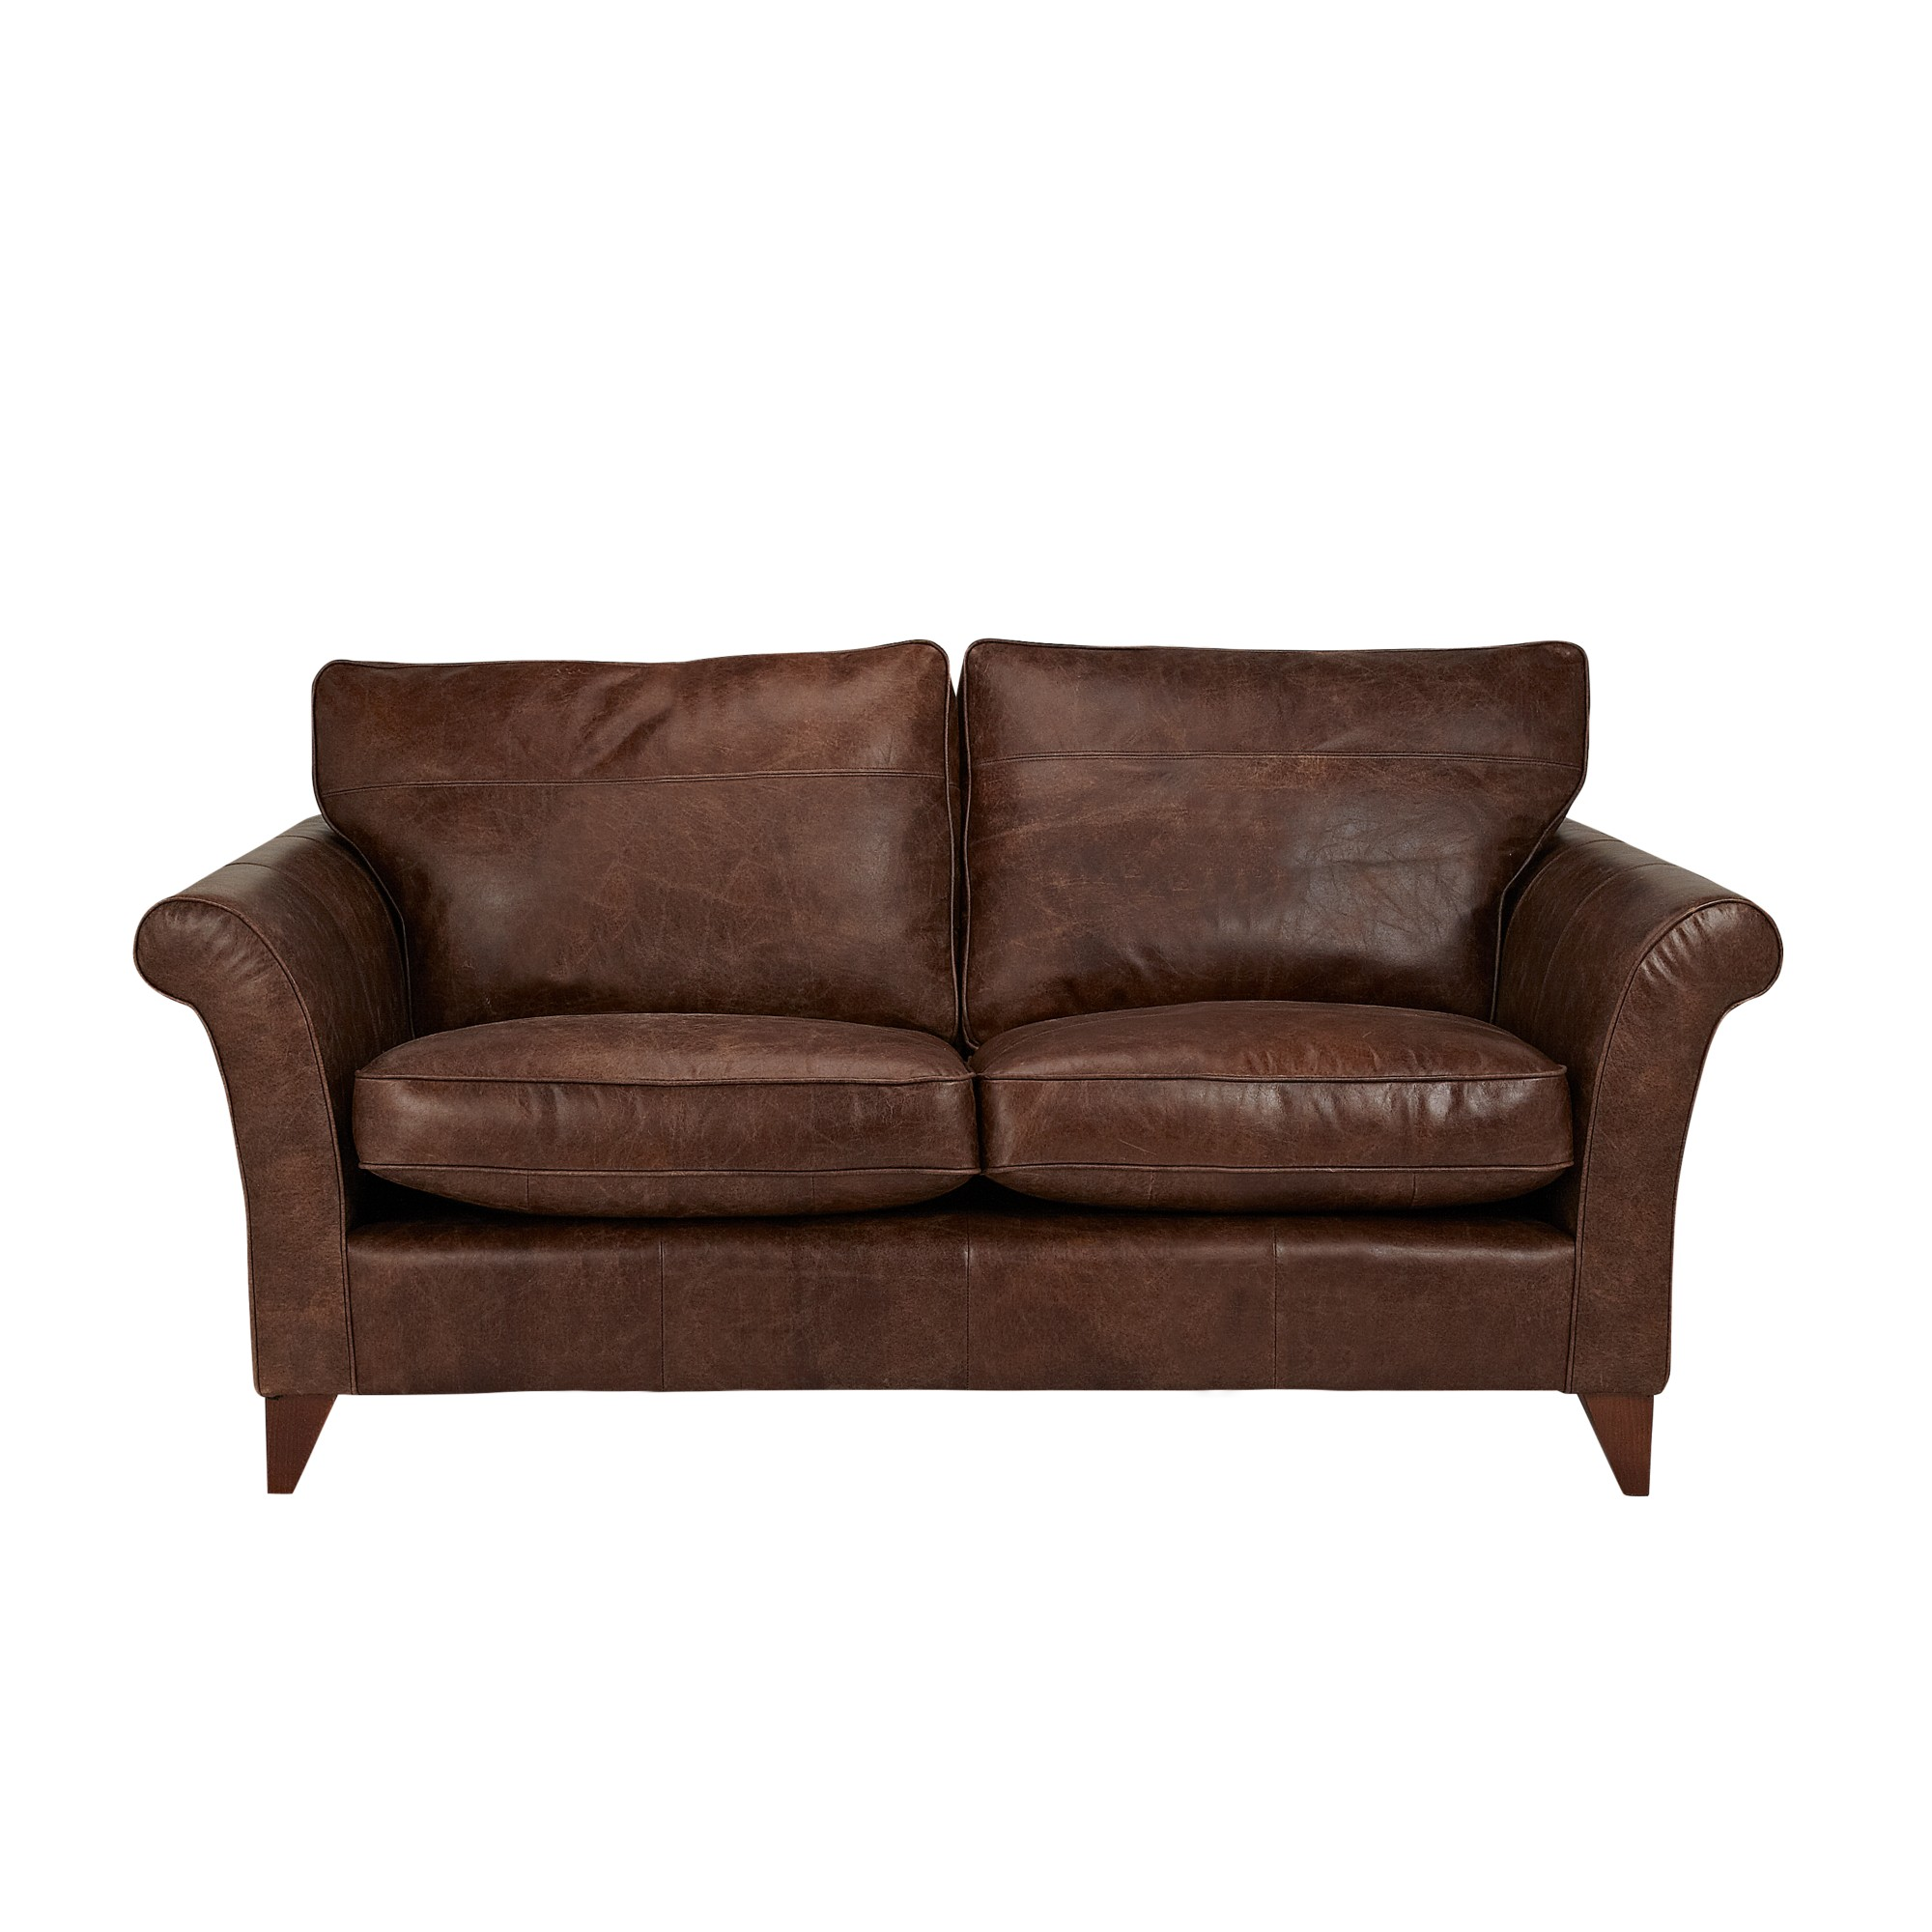 John Lewis Charlotte Leather Large Sofa Rialto Bruno Review Best Buy Review